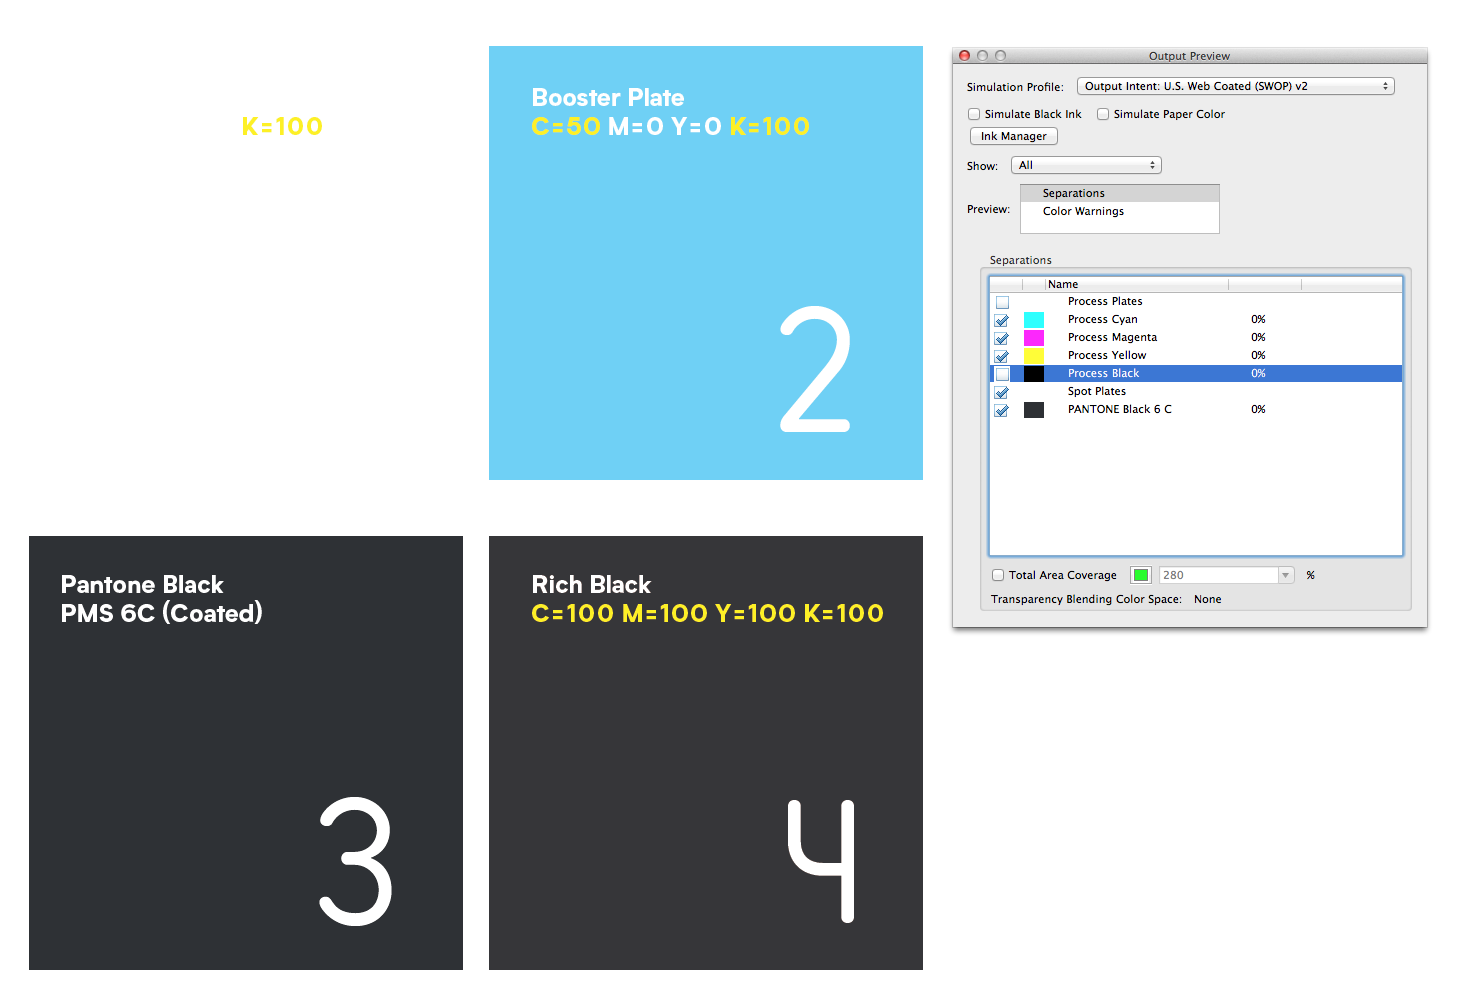 In Adobe Acrobat, you can use the  Advanced > Print Production > Output Preview  to see the colour plates separated out — this shows the K plate turned off (the box next to it is unchecked to hide it), revealing the booster plate. Notice that the Pantone black is a separate plate (Spot Plate), not one of the four process plates. If this file was sent to press with an offset printer, it would indicate to the printer 5 plates (CMYK + Spot).